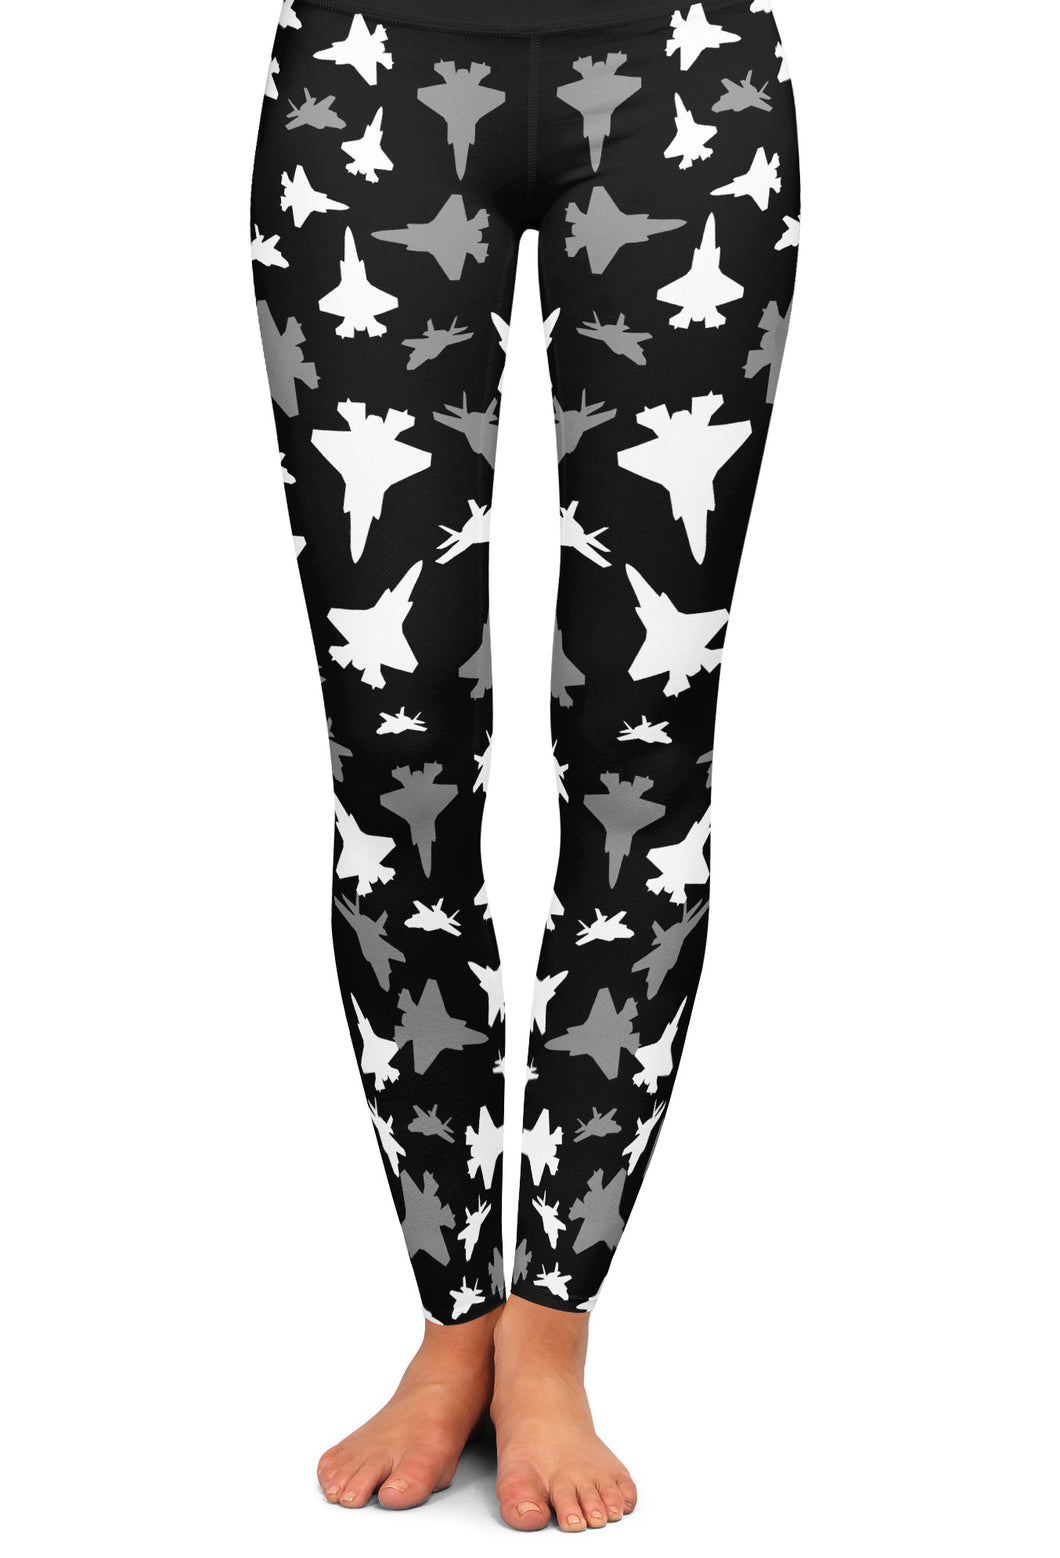 F-35 Silhouette Yoga Leggings